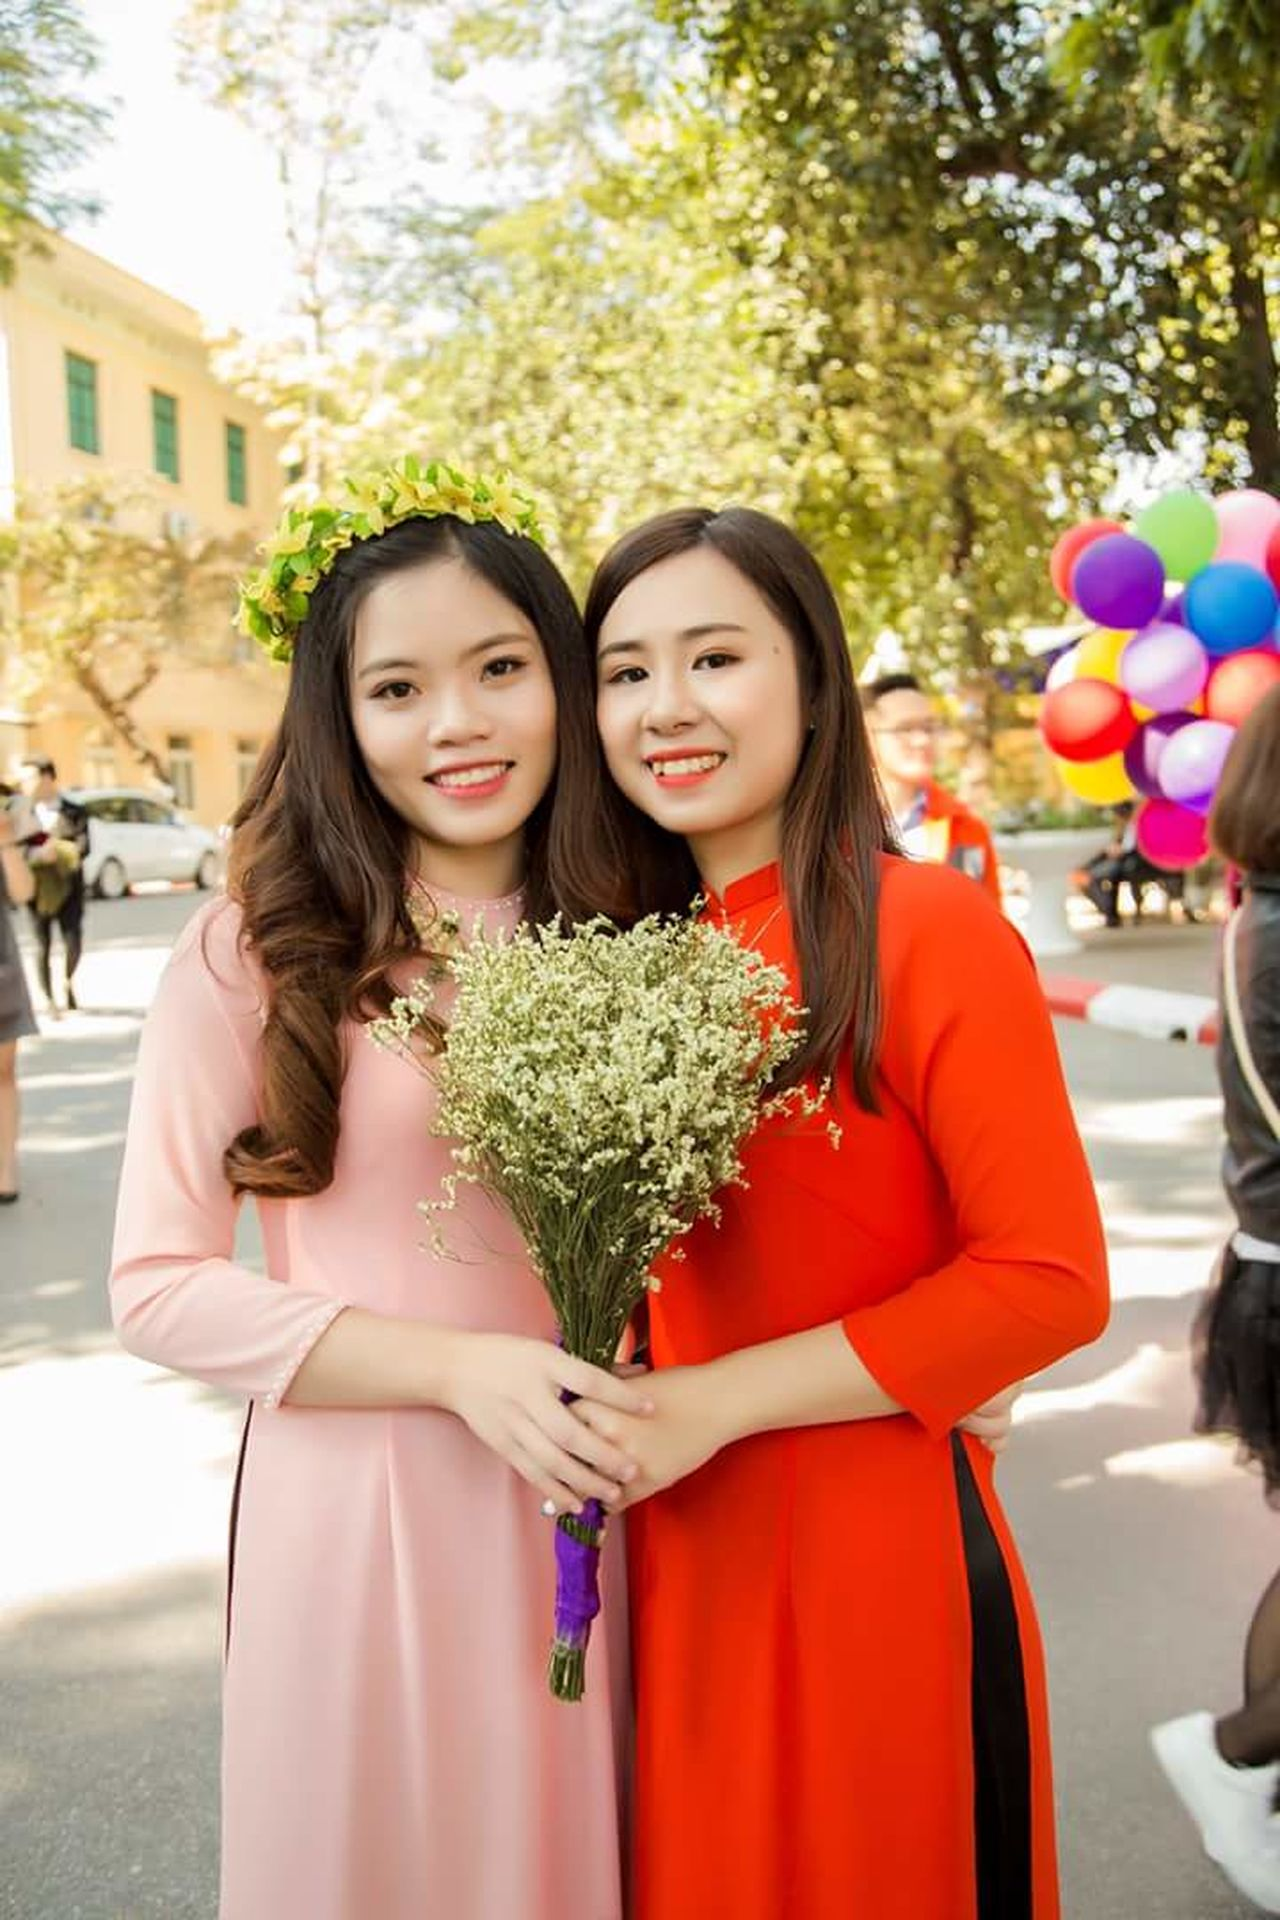 Only Women Young Adult Friendship Beautiful People Looking At Camera Portrait Beauty Adults Only Young Women Adult City Fun People Two People Standing Outdoors Beautiful Woman Smiling Tree Cheerful aodai AoDaiVietnam Beautiful People Looking Down One Young Woman Only Selfie ♥